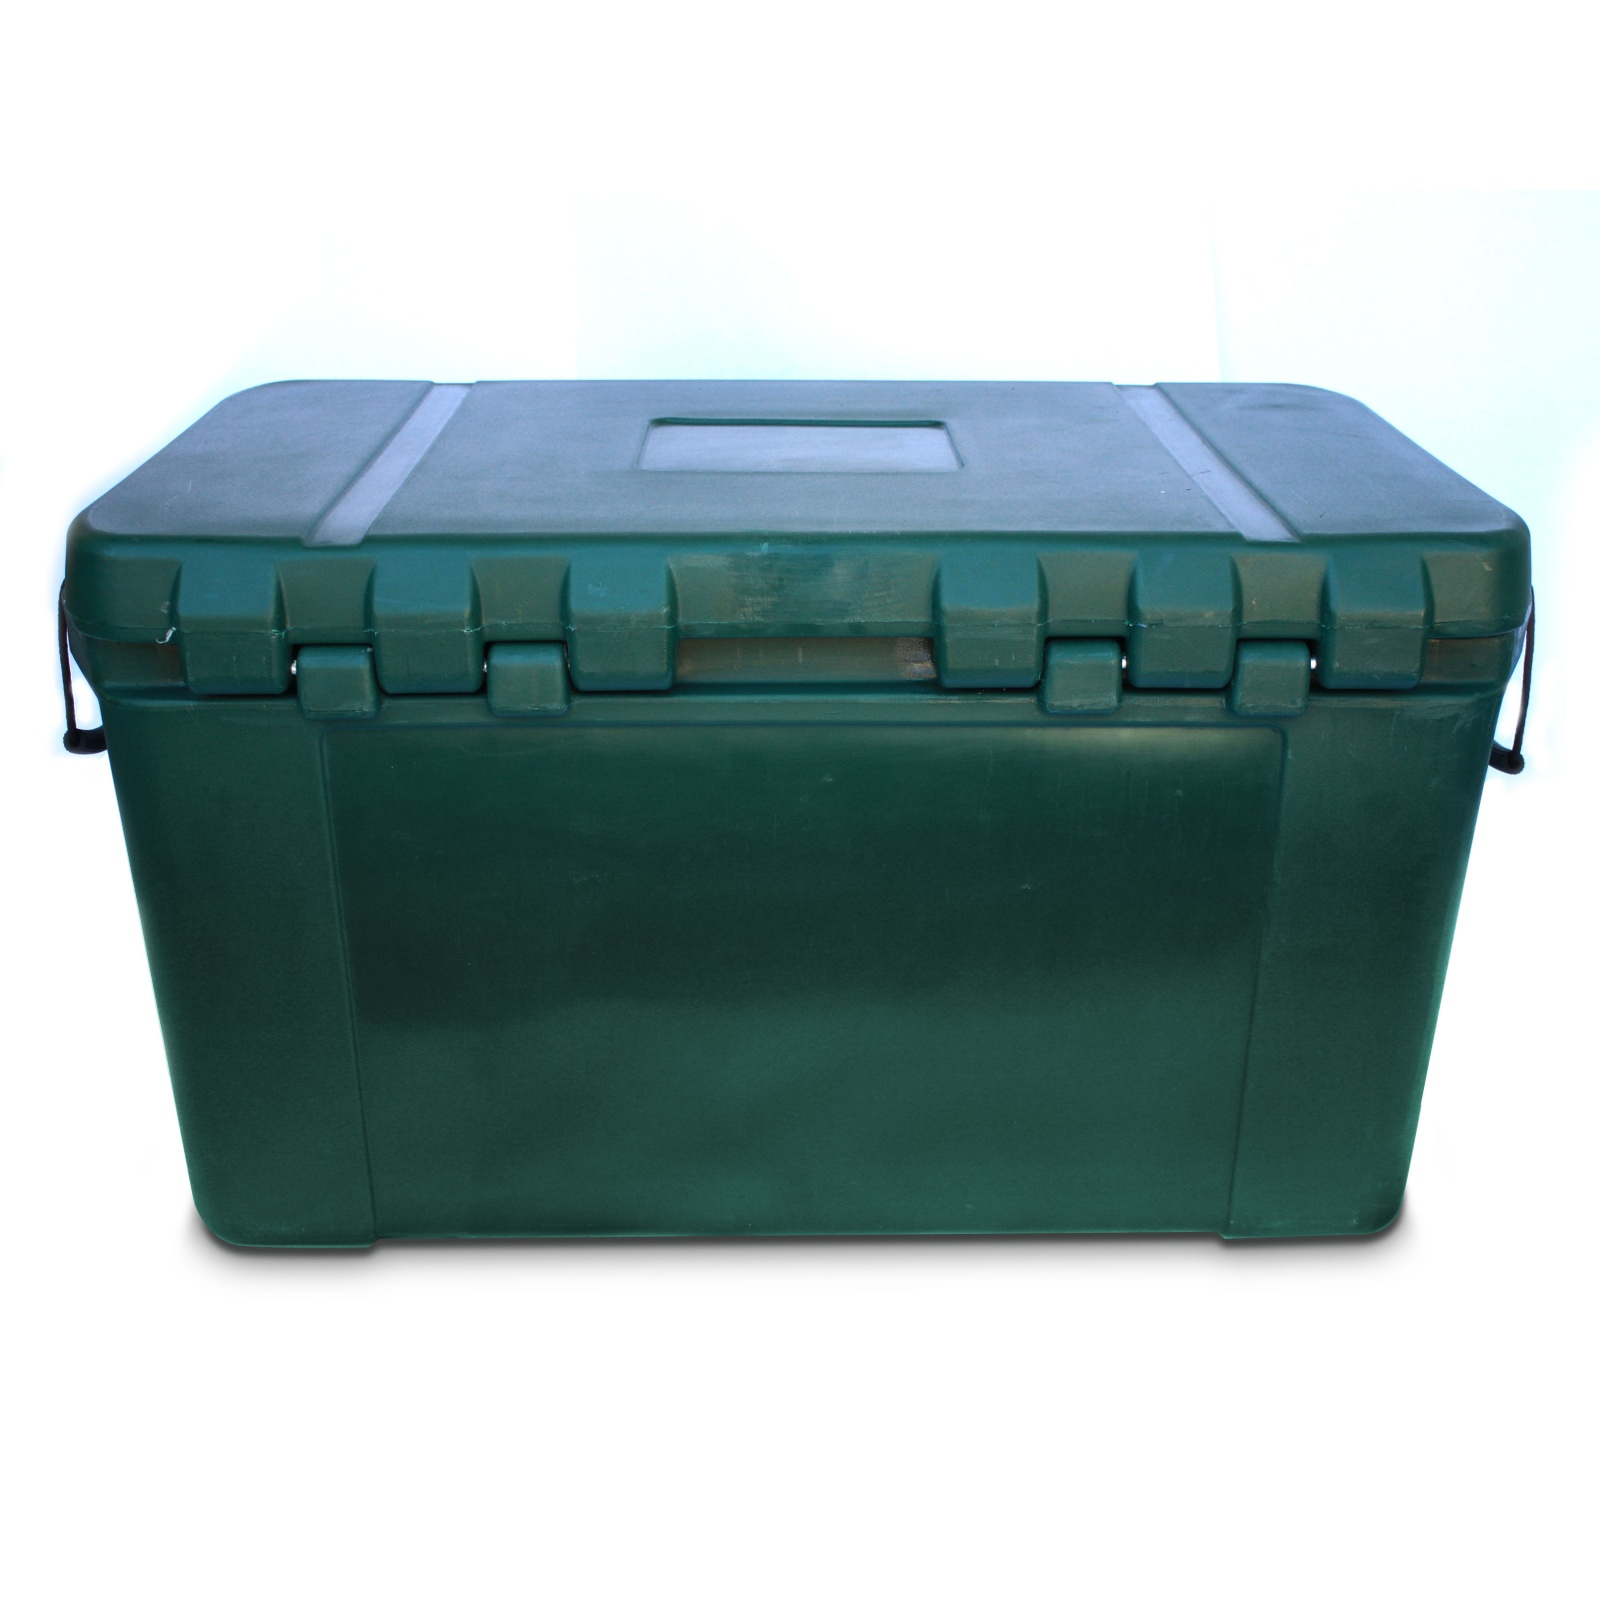 Click image for larger version  Name:150L Pro Green back.jpg Views:203 Size:283.3 KB ID:4167